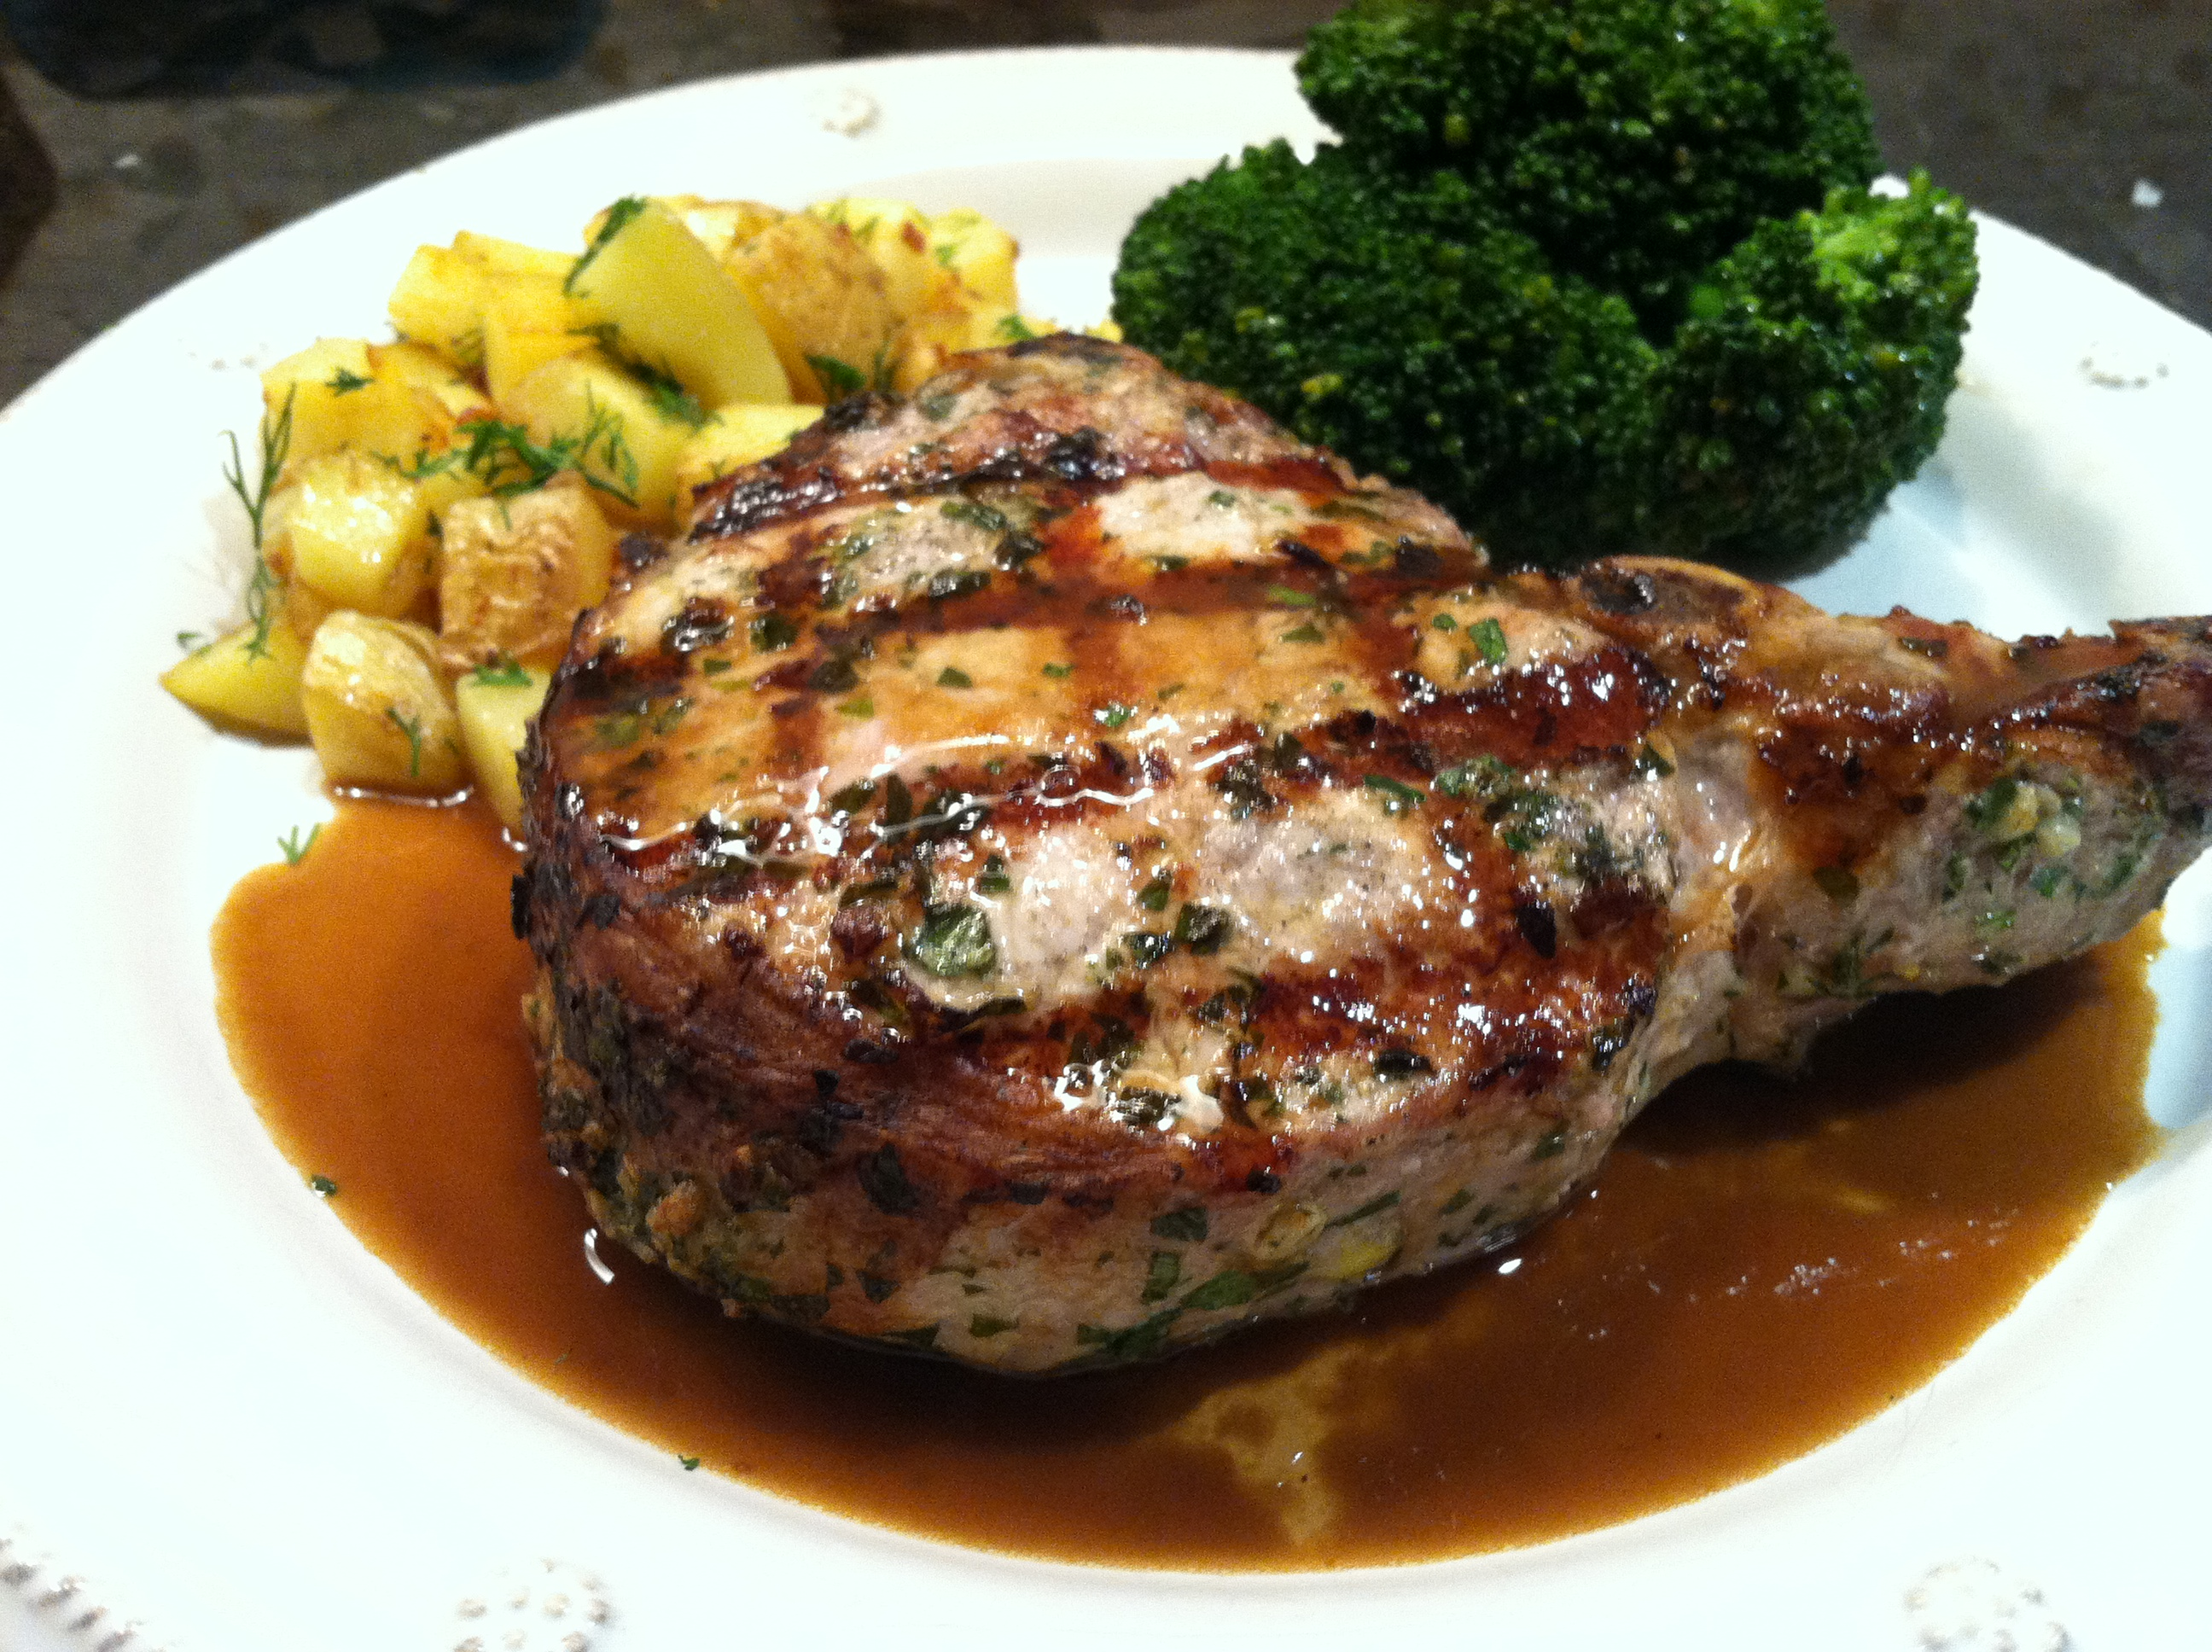 Grilled Pork Chops With Pinot Noir And Espresso Infused Demi Glace